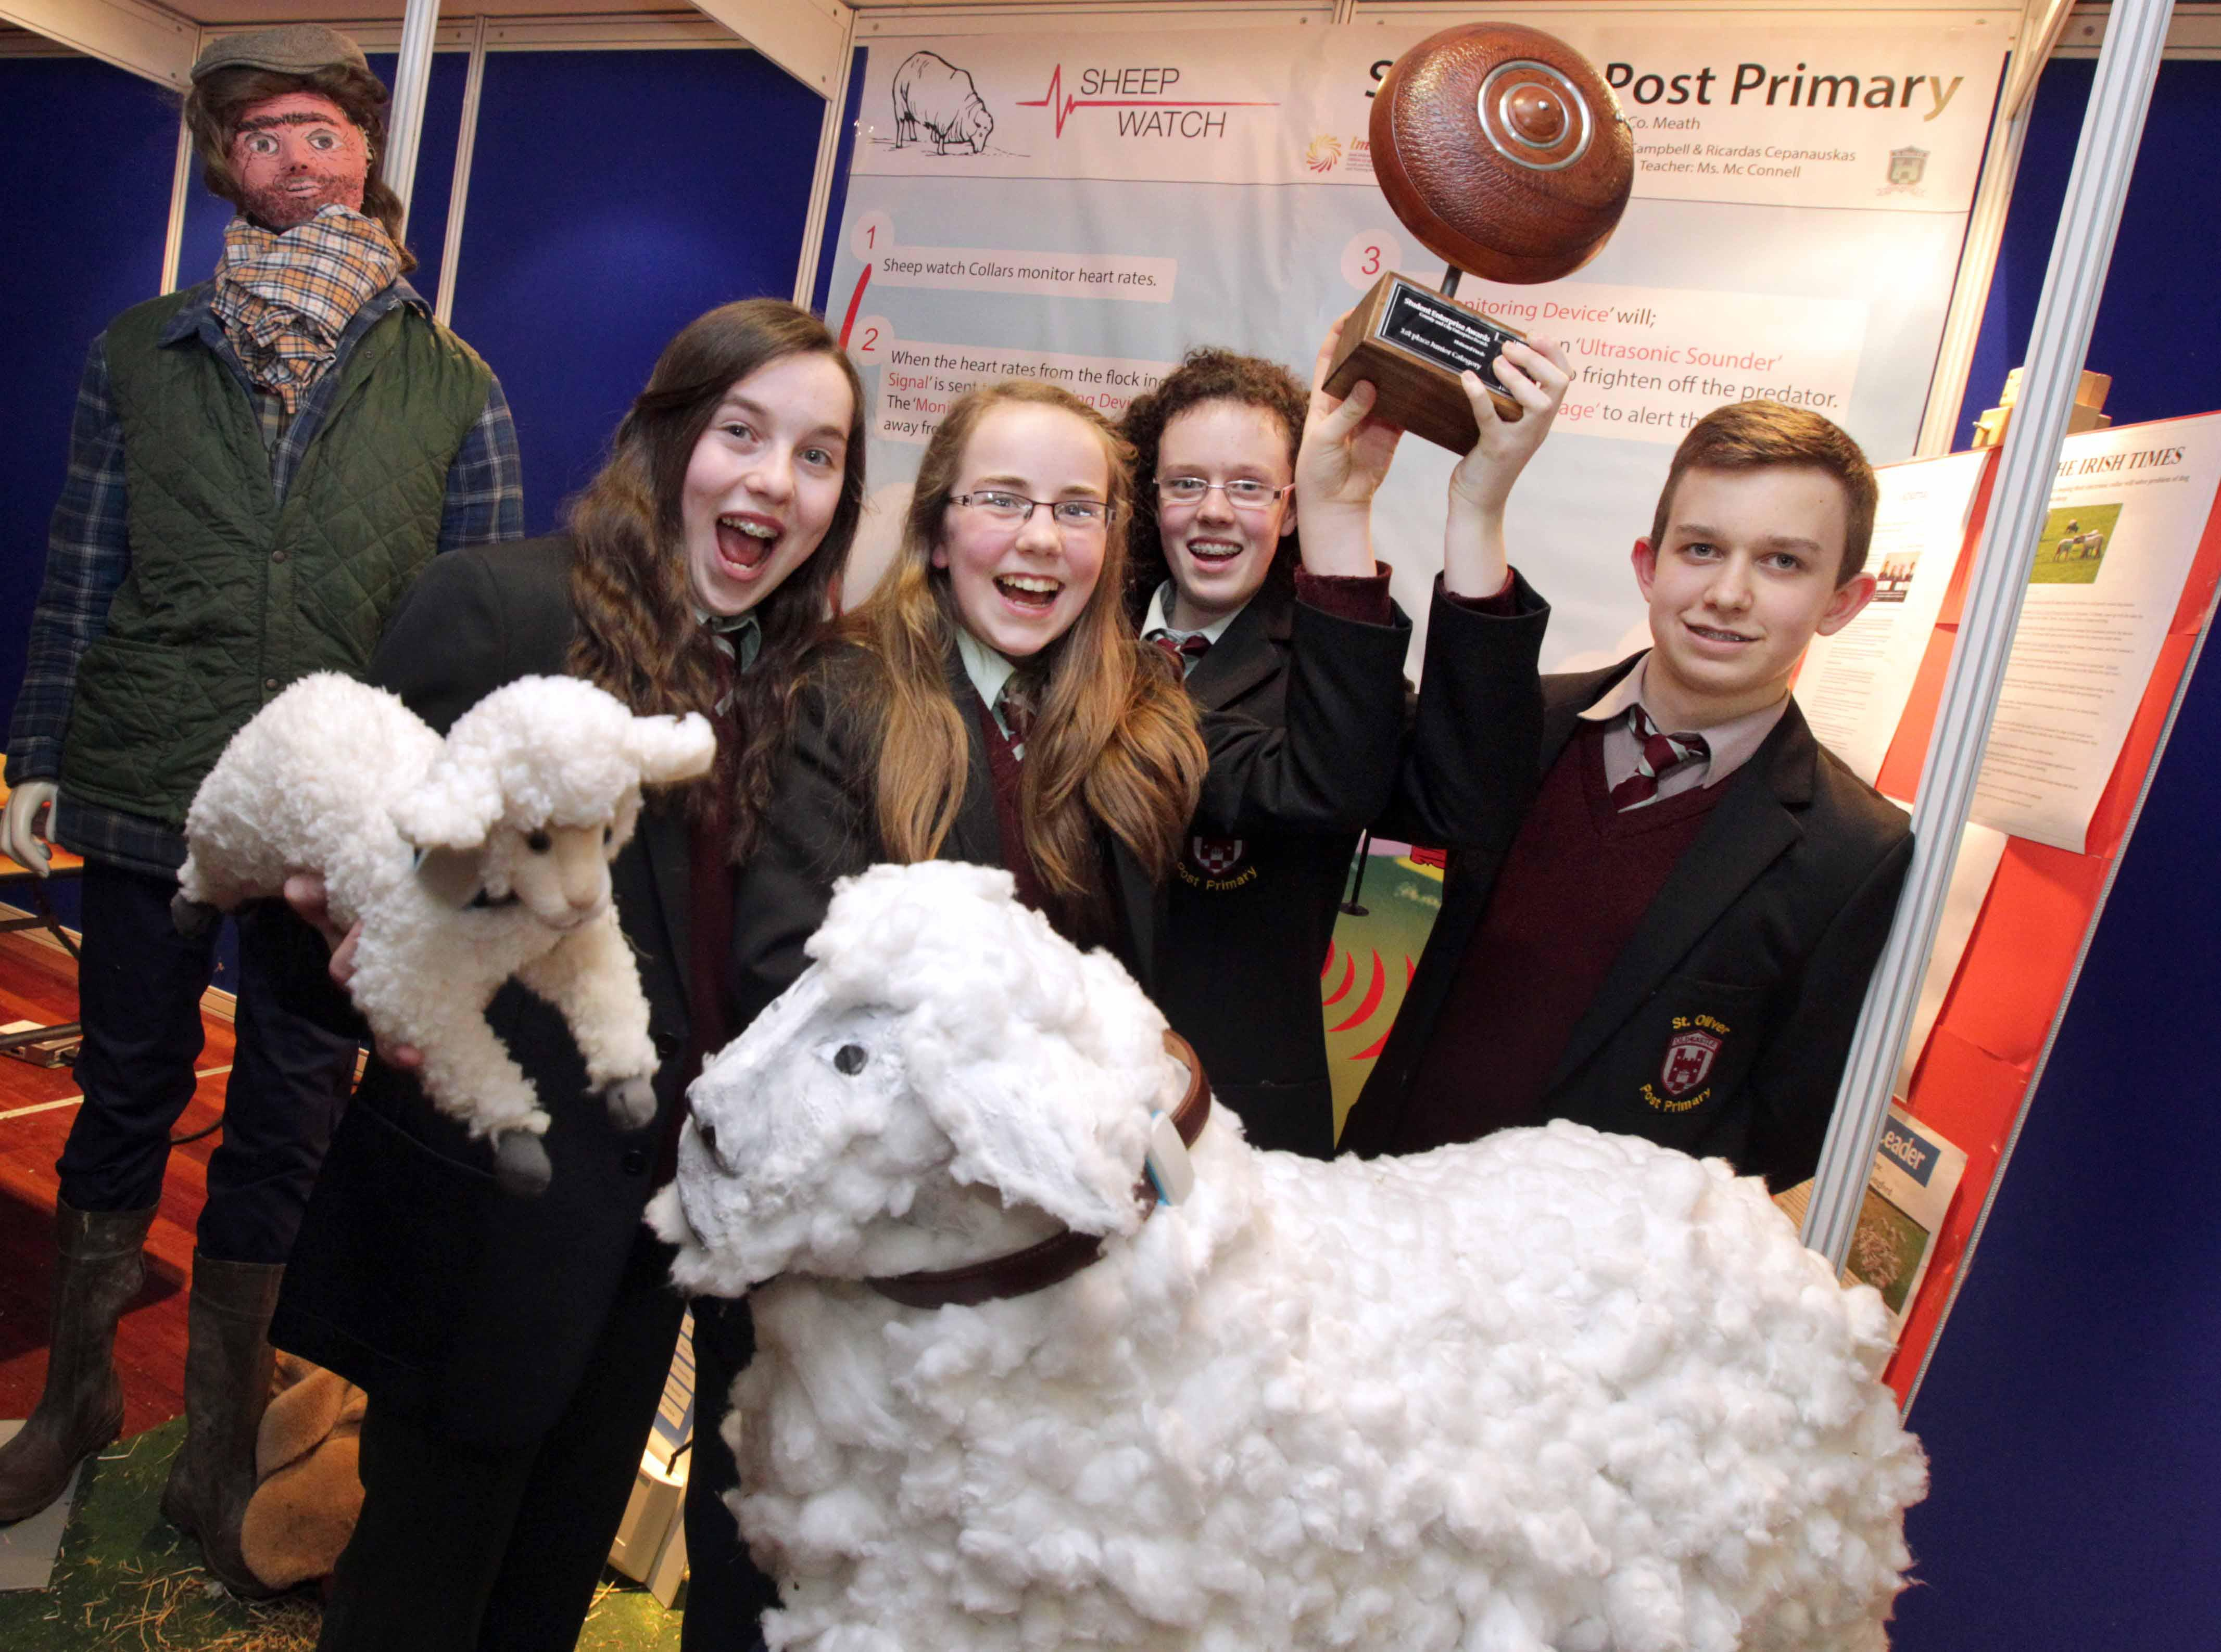 Emma McCabe (14), Zoe Maguire (13), Edel Campbell (13) and Ricardas Cepanauskas (14) of 'Sheep Watch' from St. Oliver Post Primary School, Oldcastle, Co. Meath winners of the Junior Category  of the S